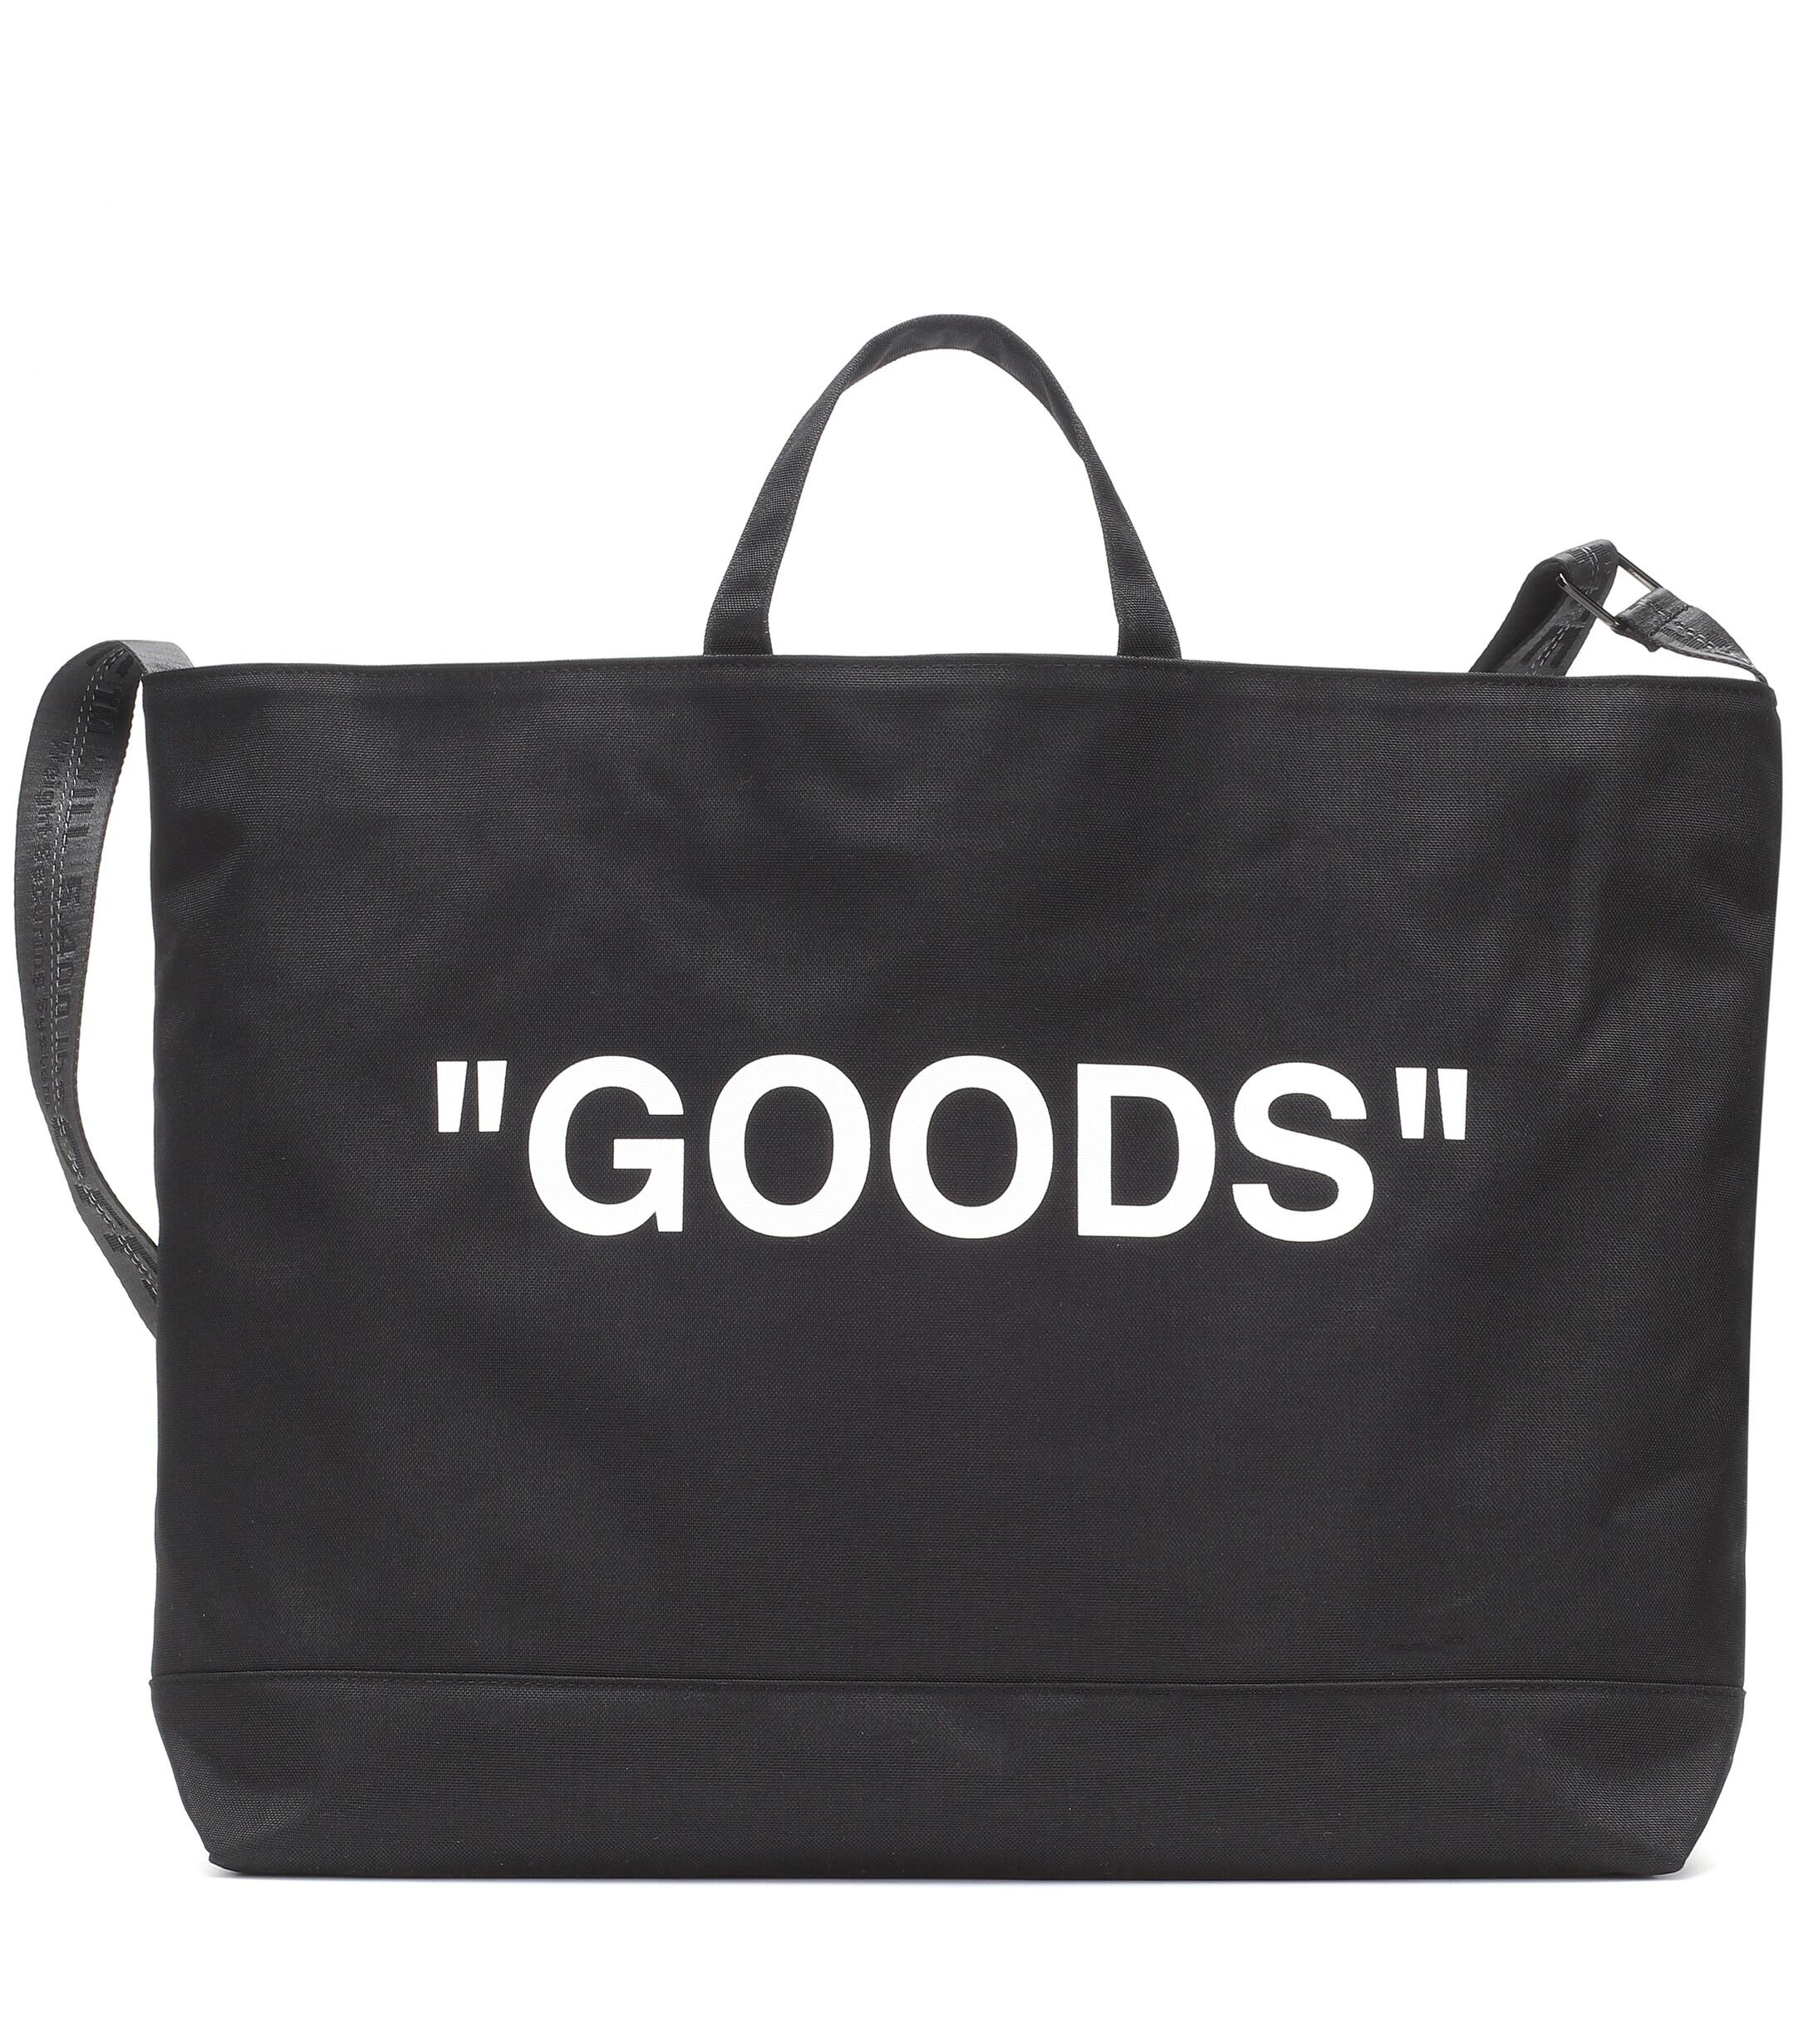 f4f4eb601 Off-White c/o Virgil Abloh Printed Nylon Tote in Black - Lyst